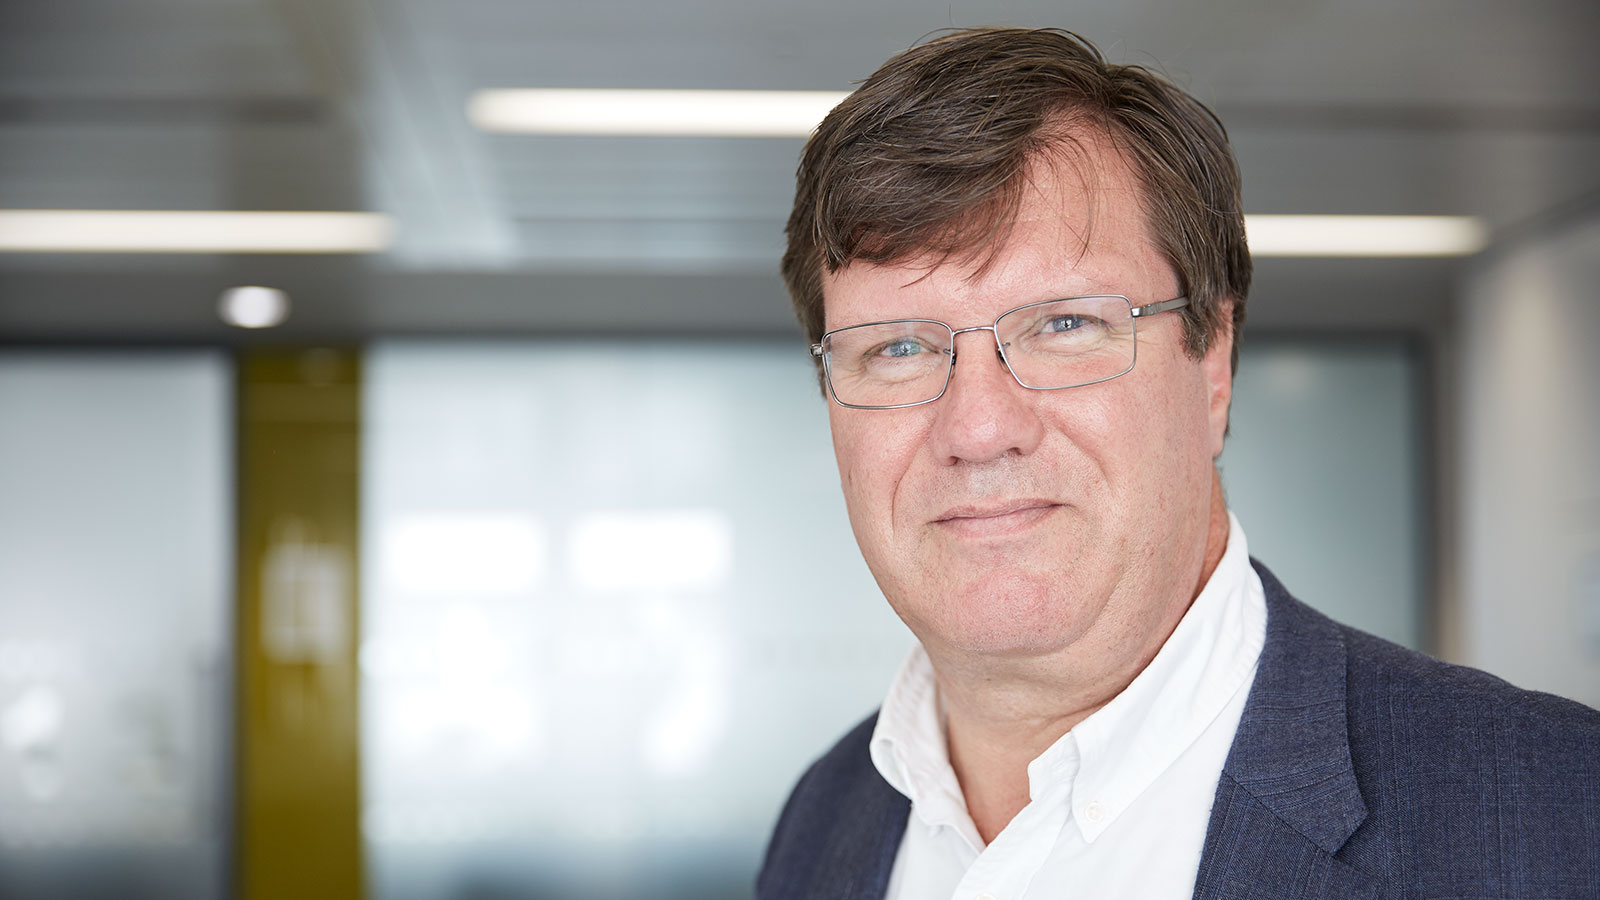 Peter Goring, Operations Director, Engineering